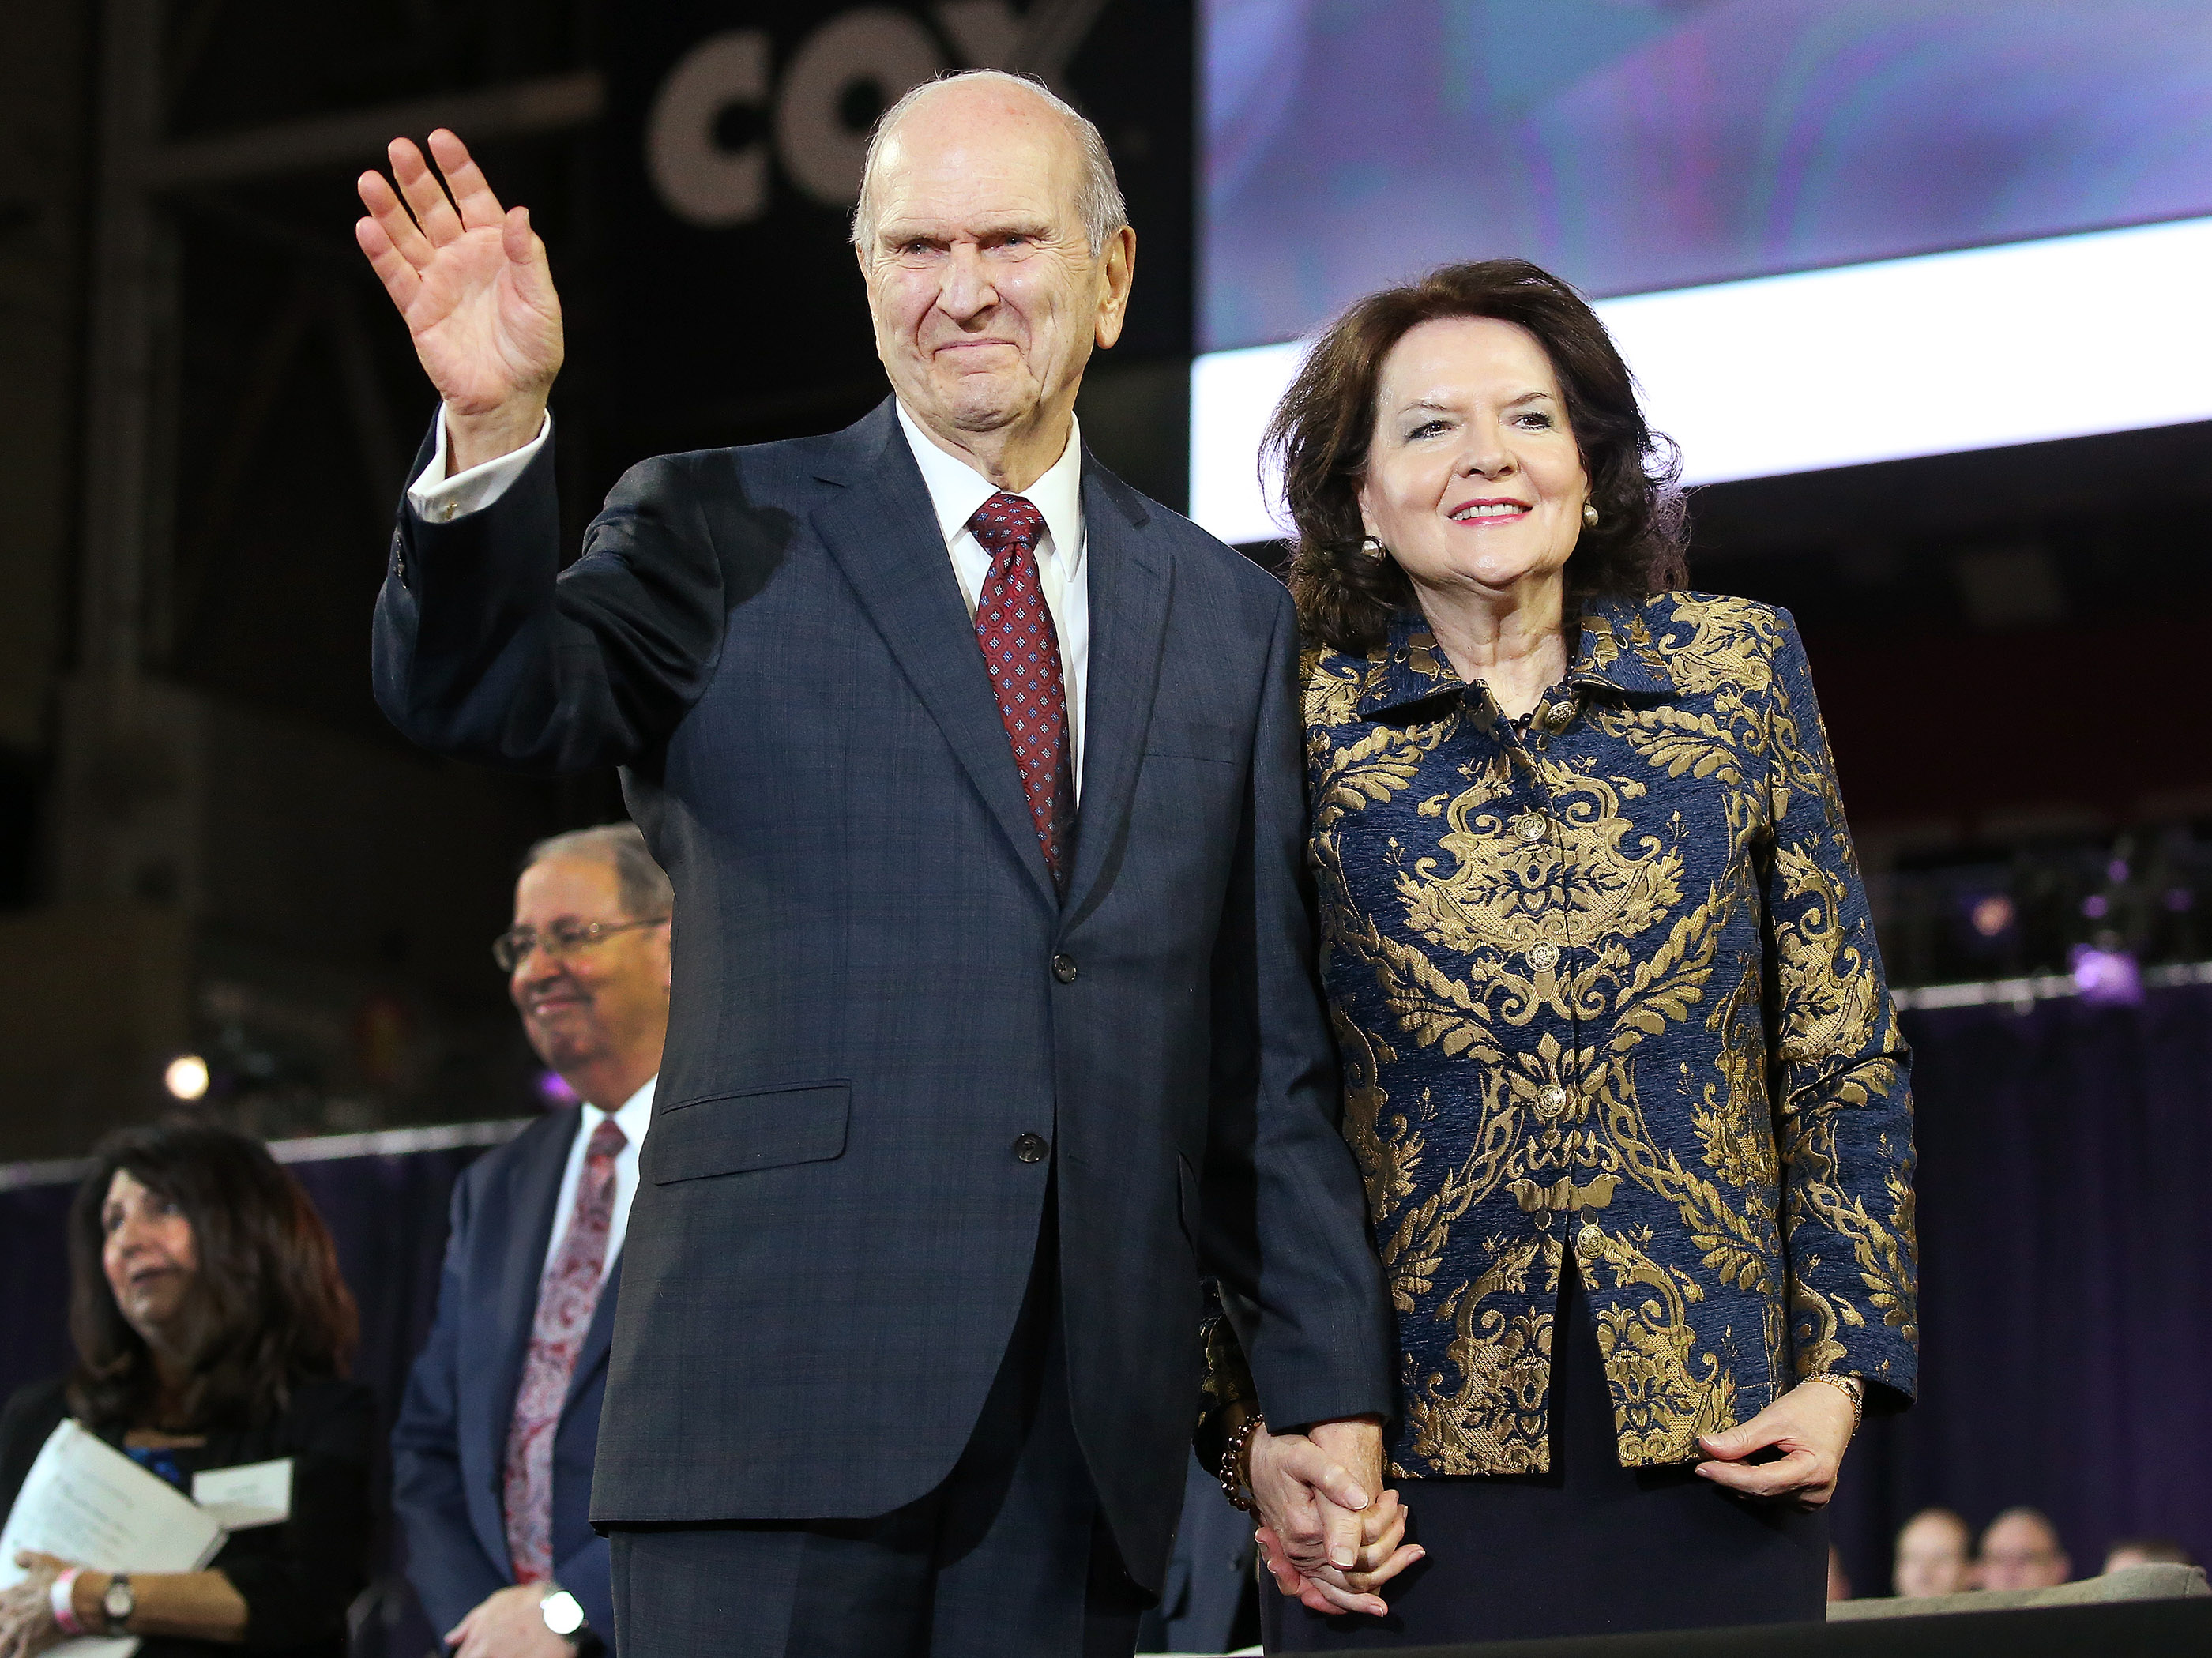 President Russell M. Nelson of The Church of Jesus Christ of Latter-day Saints waves to attendees with his wife Wendy after a devotional at the State Farm Stadium in Phoenix on Sunday, Feb. 10, 2019.